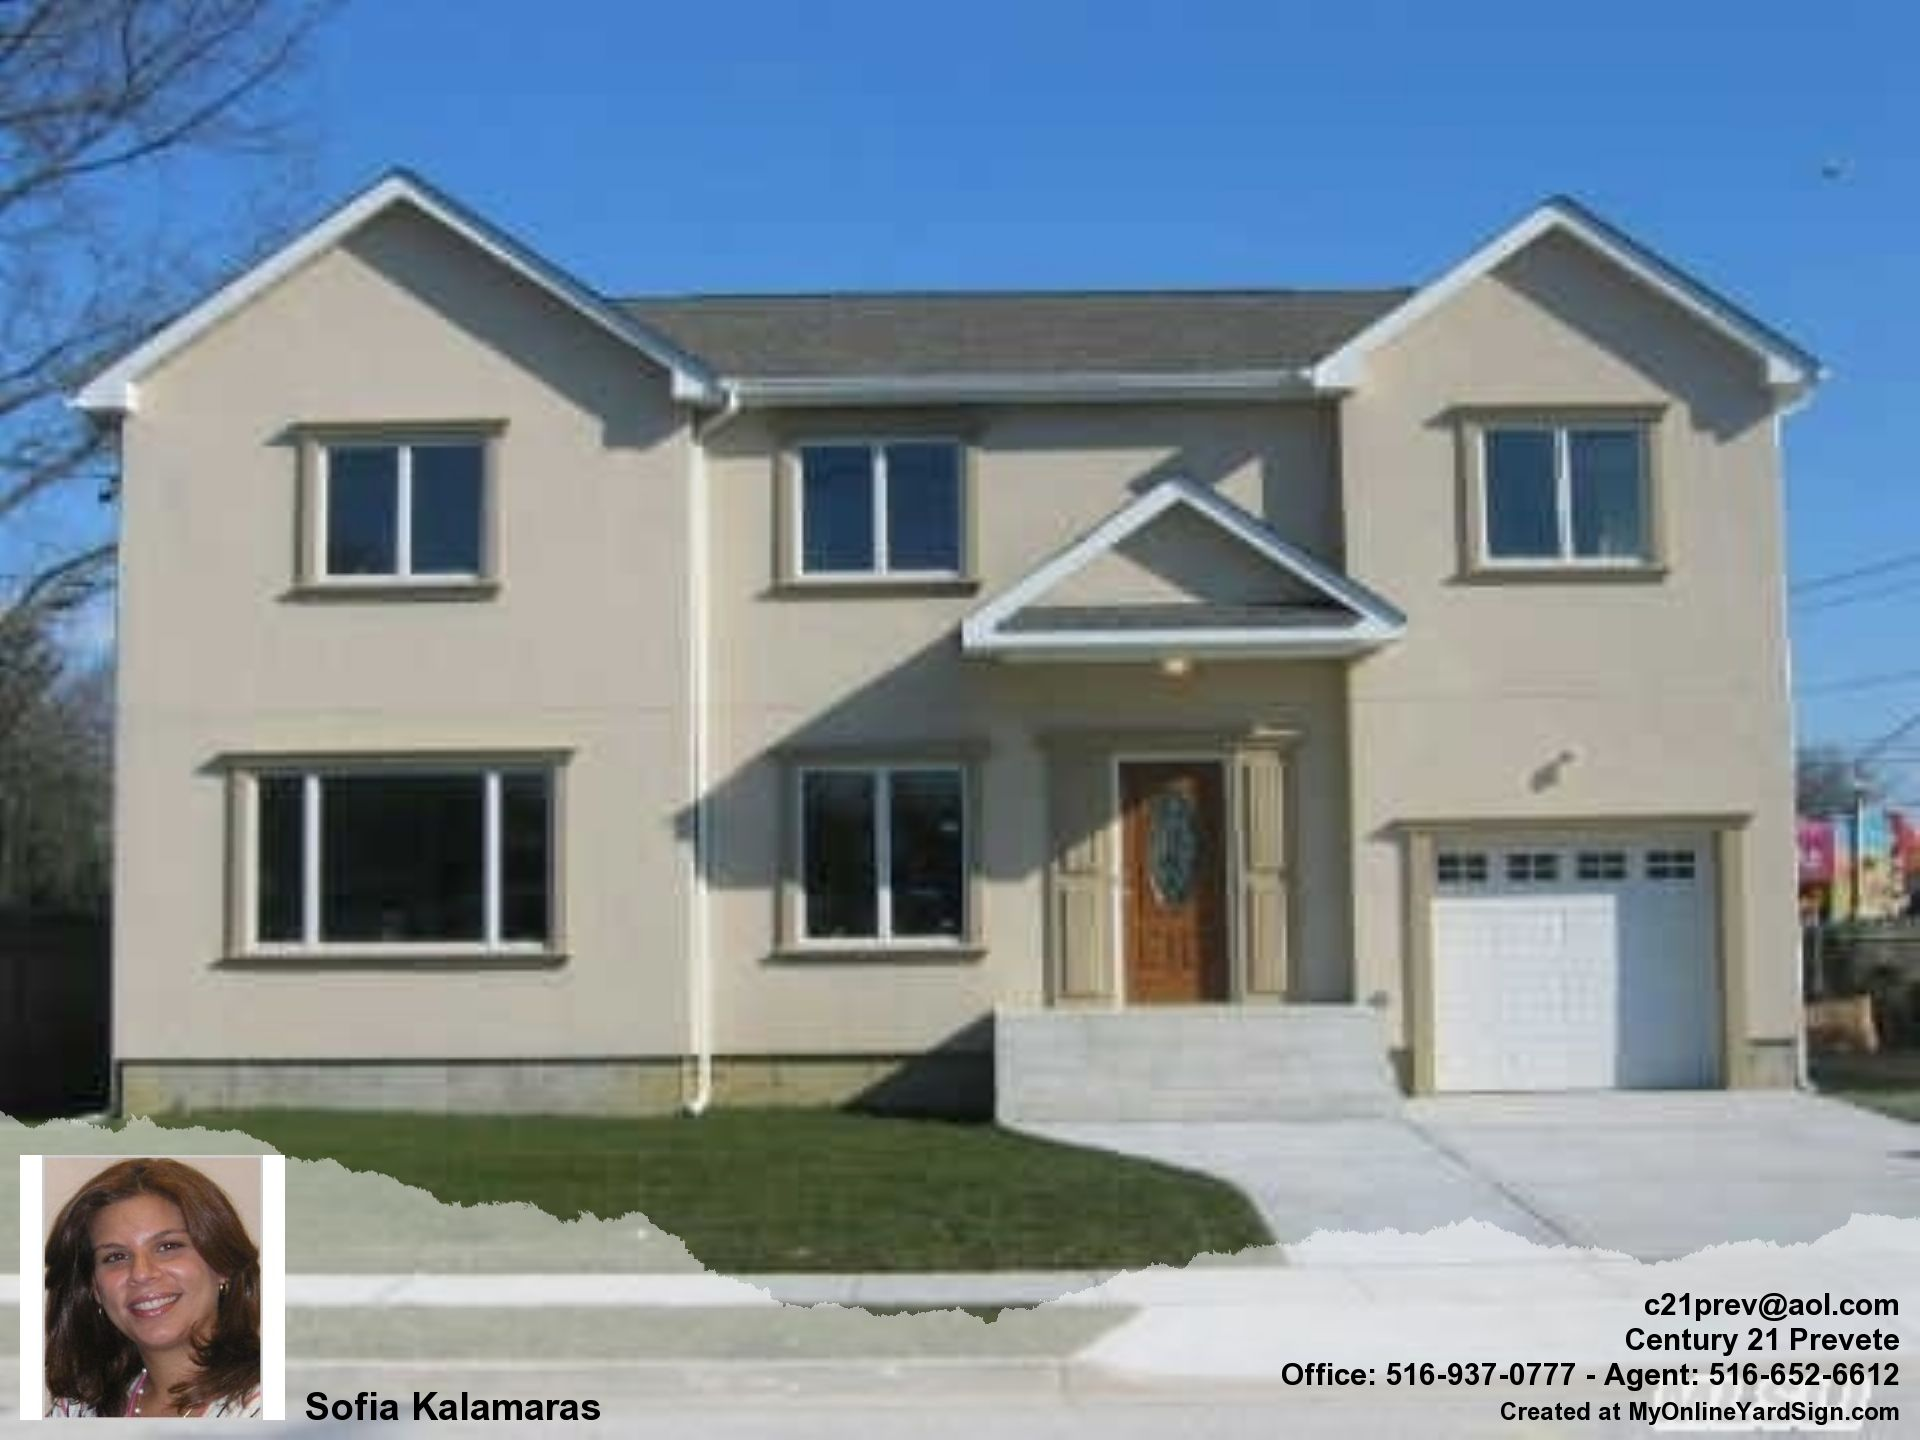 2261 Willow St, Wantagh, New York 11793